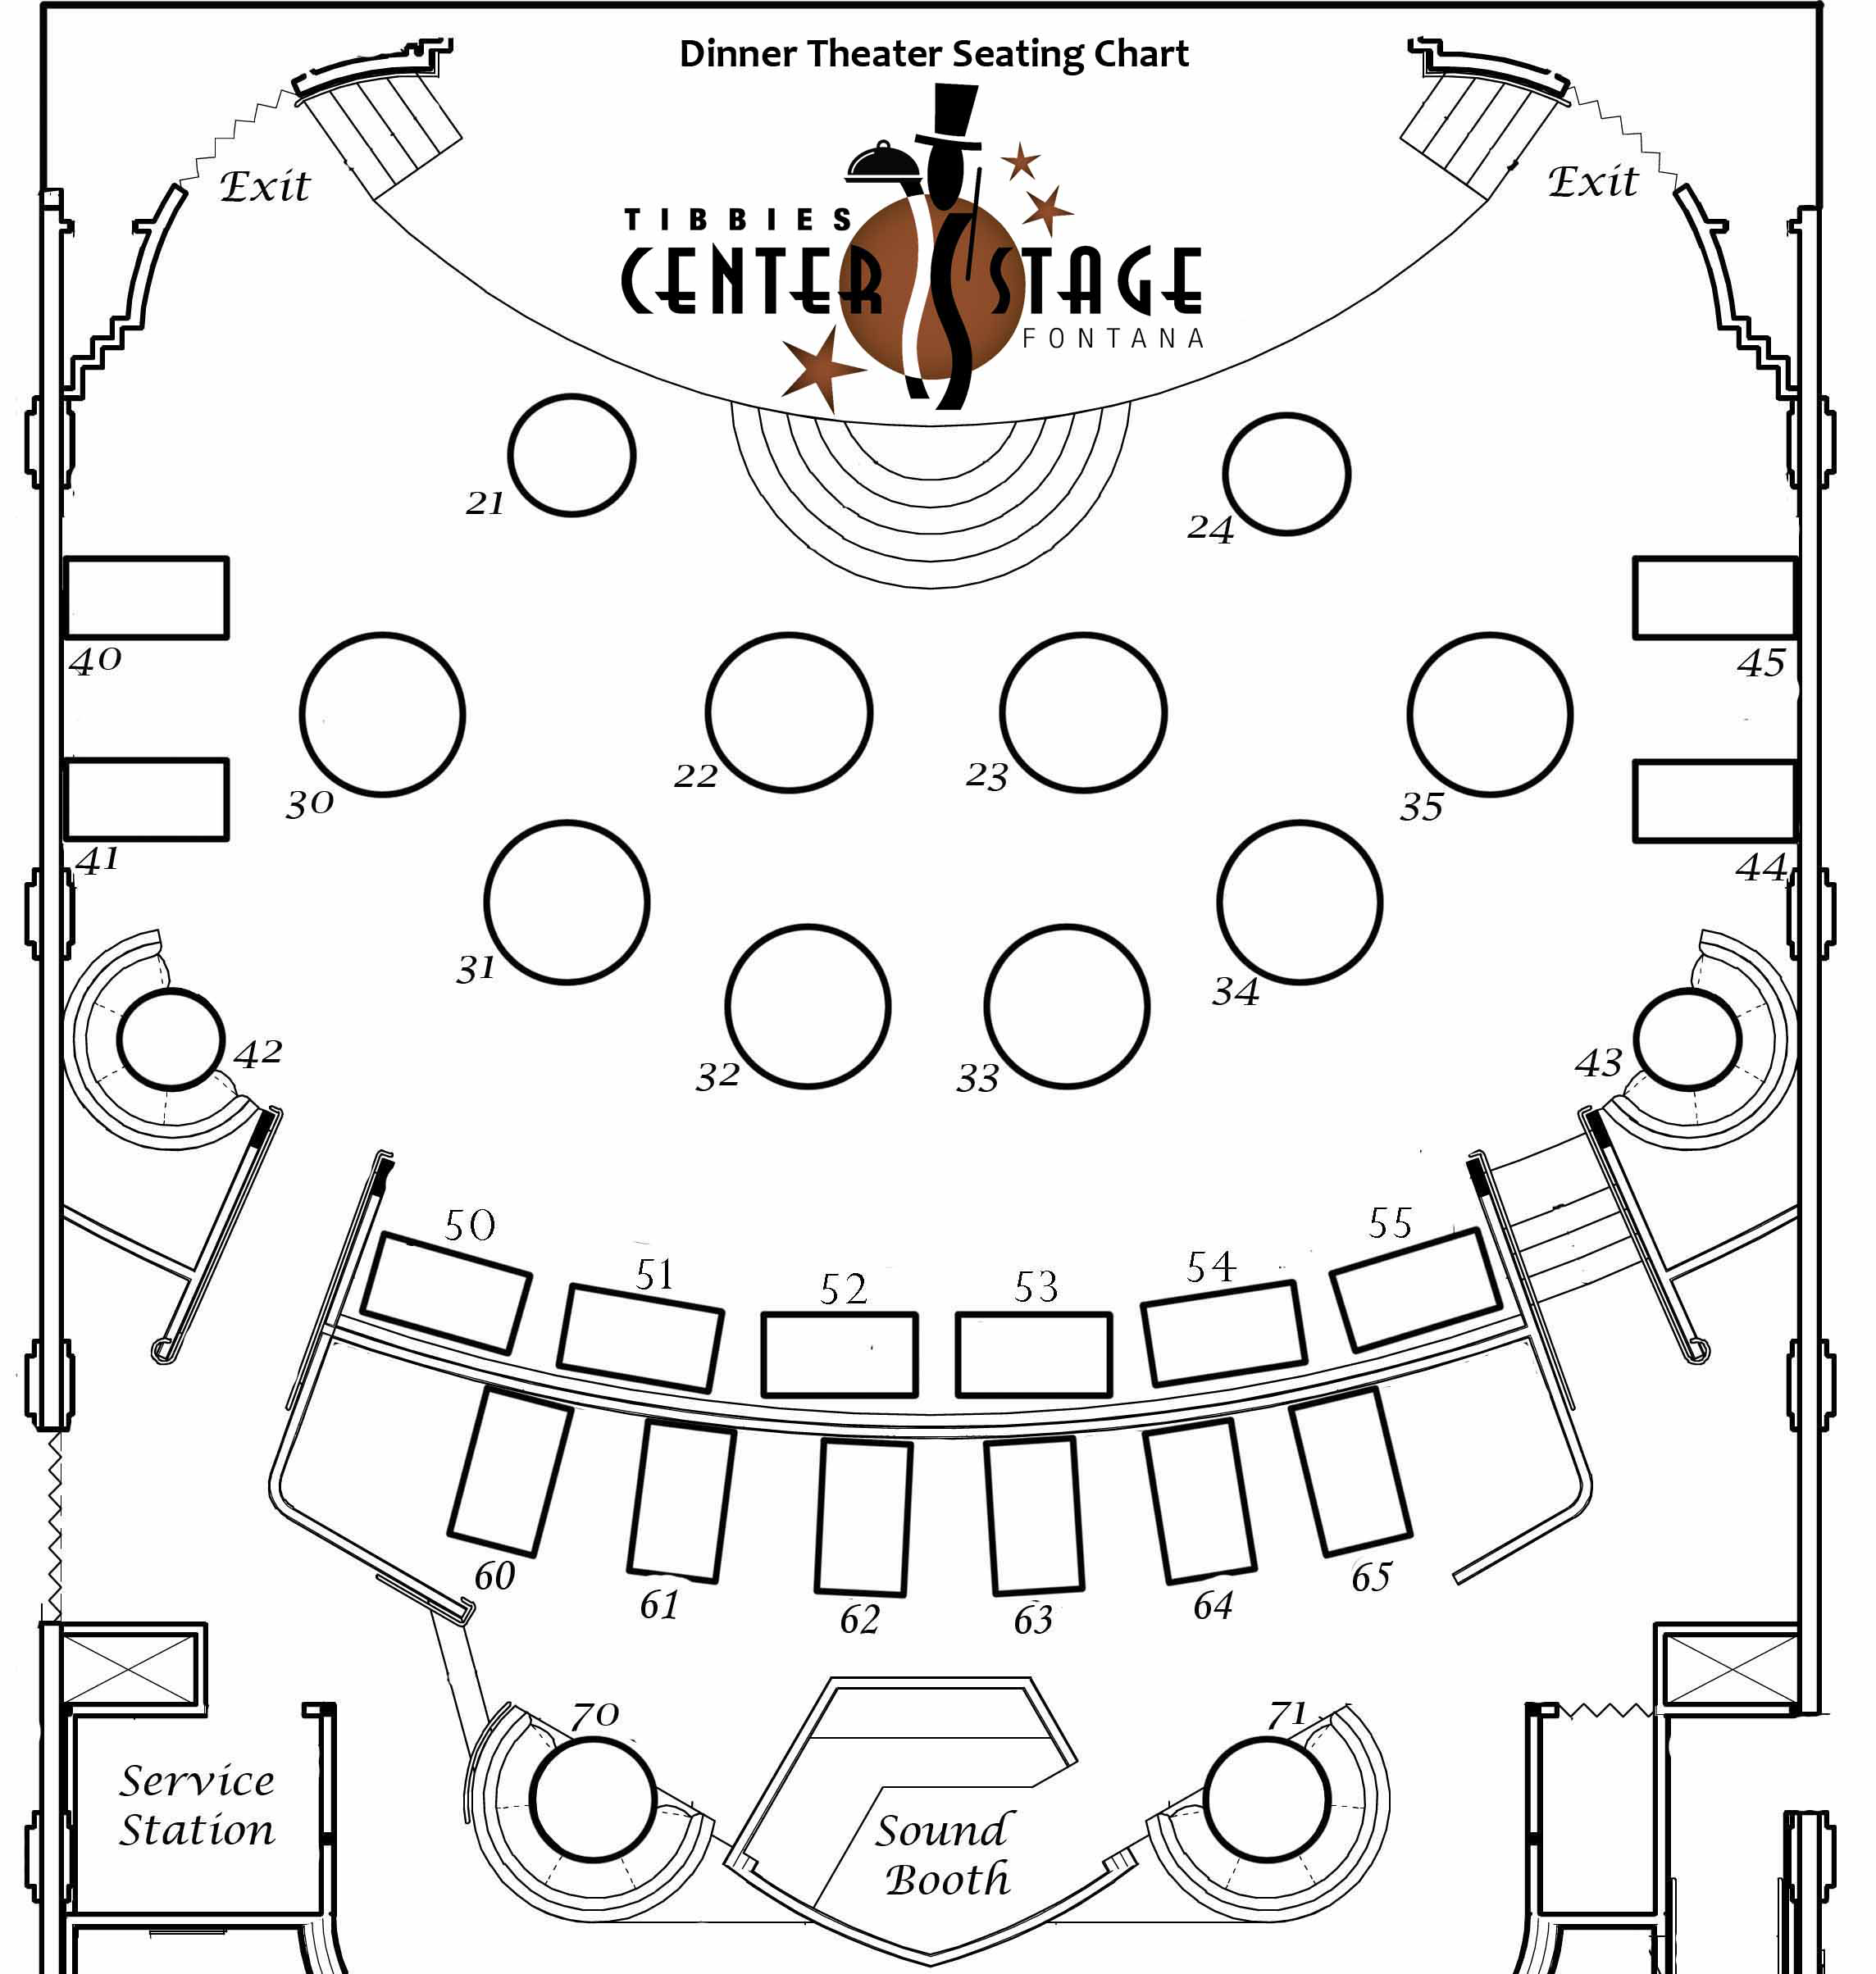 room layout template buffet table layout diagram catering complete Stand Layout Diagram